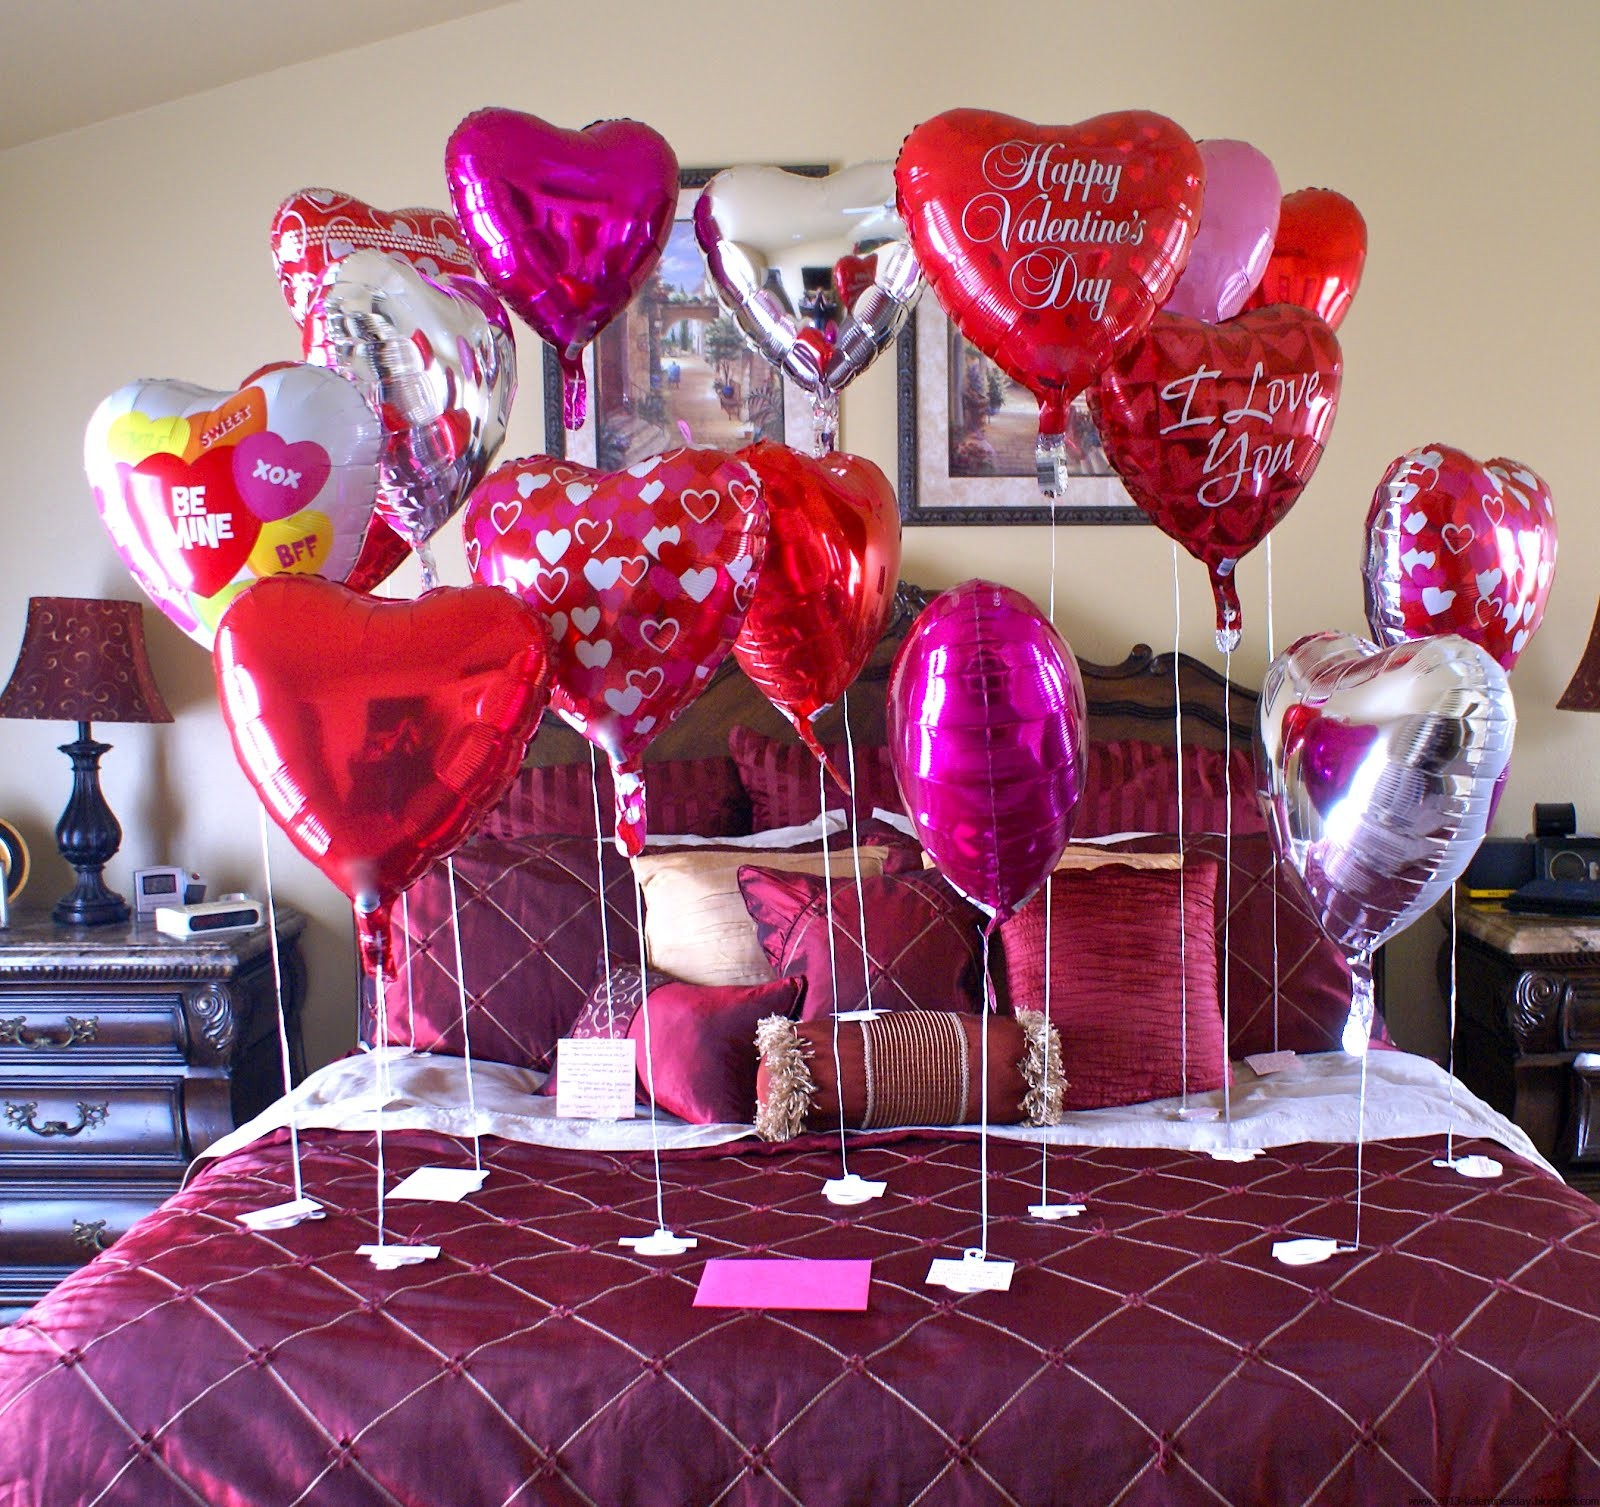 Red Valentine Home Decor Ideas inspiredluv (6)